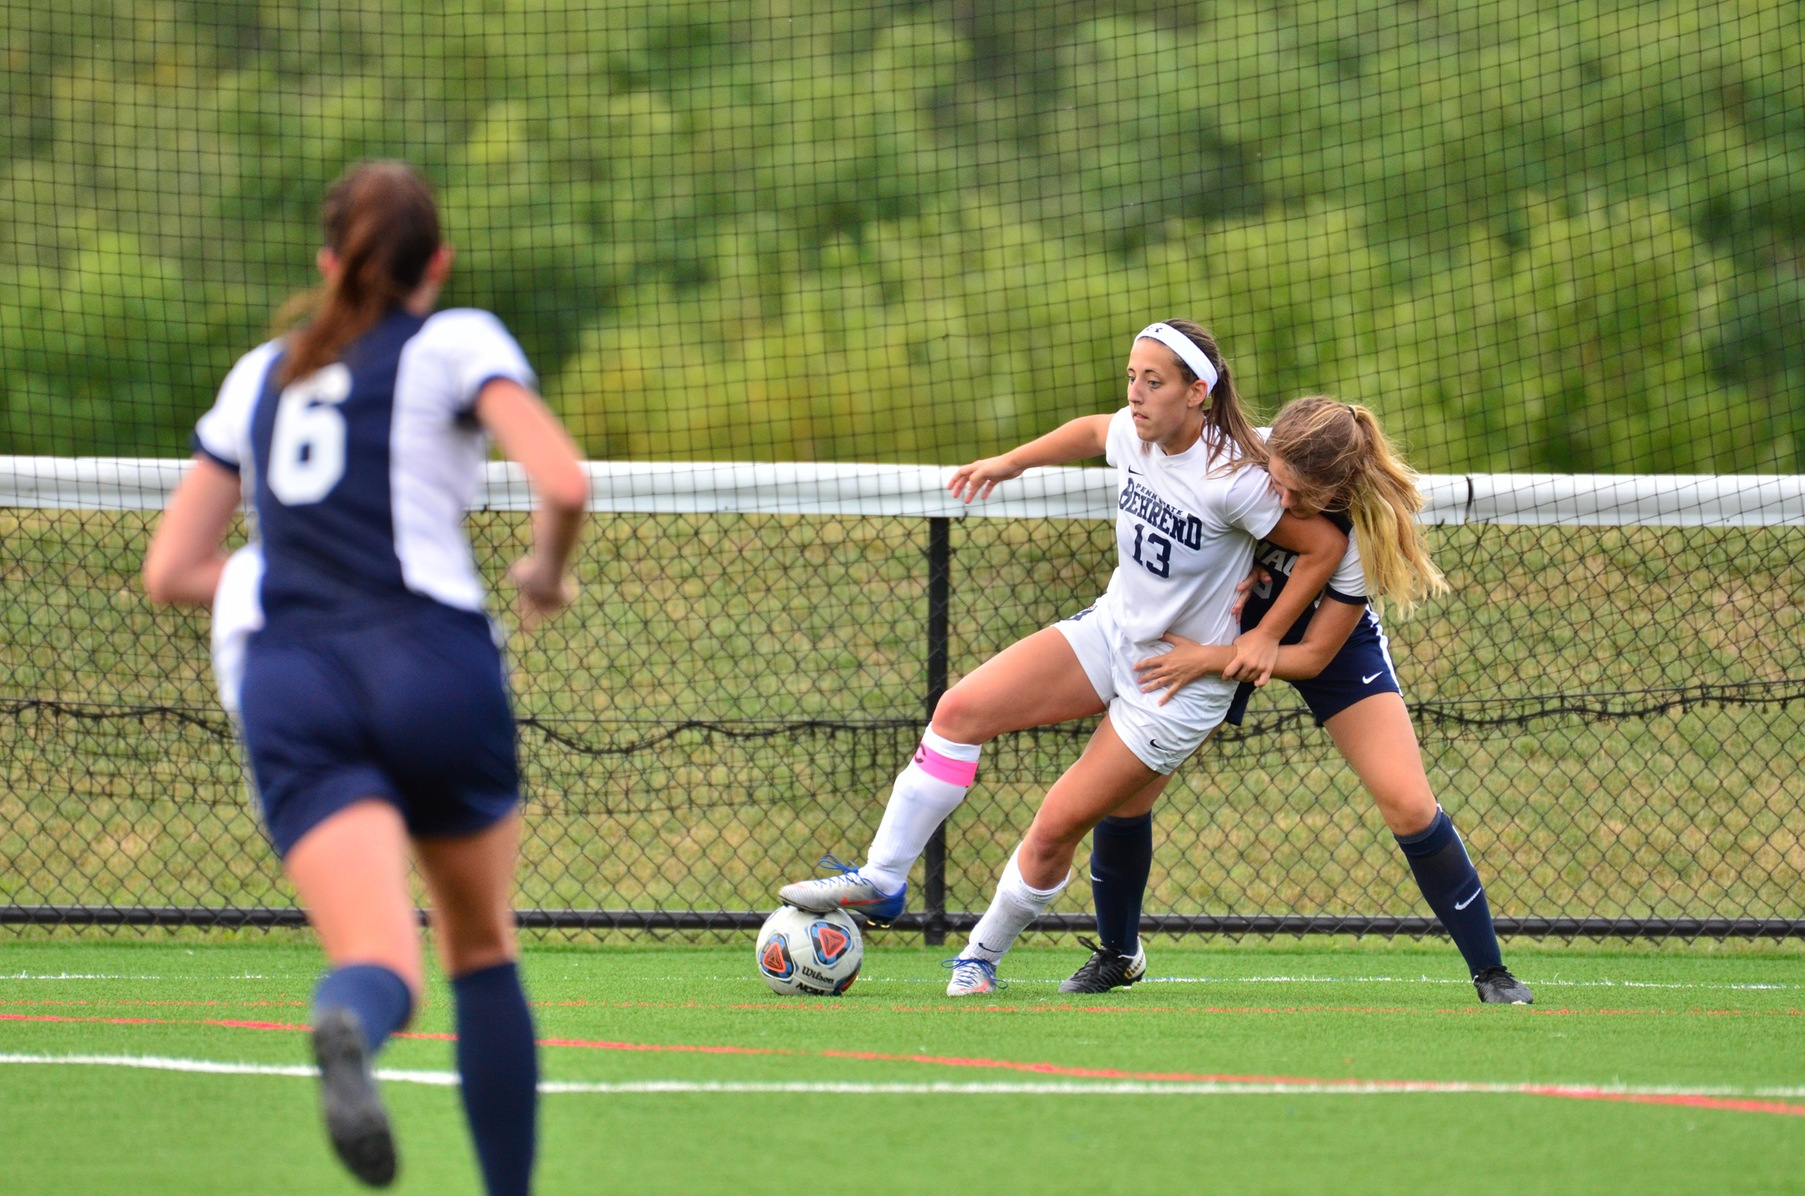 Oberlander Nets Game Winner Over Mt. Union